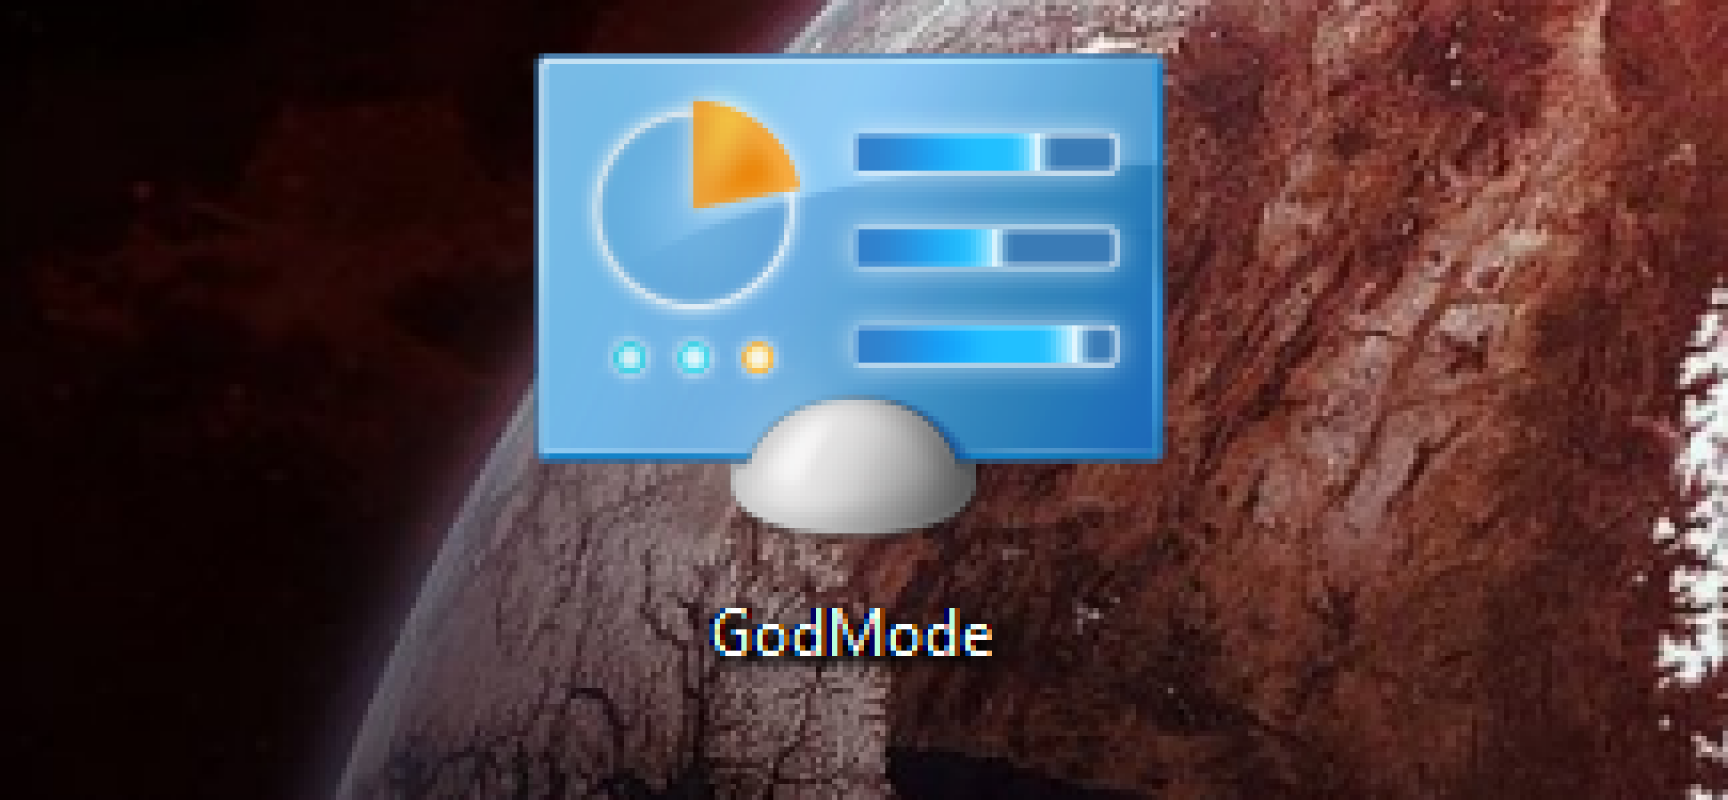 Windows Vista/7/8/8.1/10 : activer le God Mode ( Mode Dieu ).